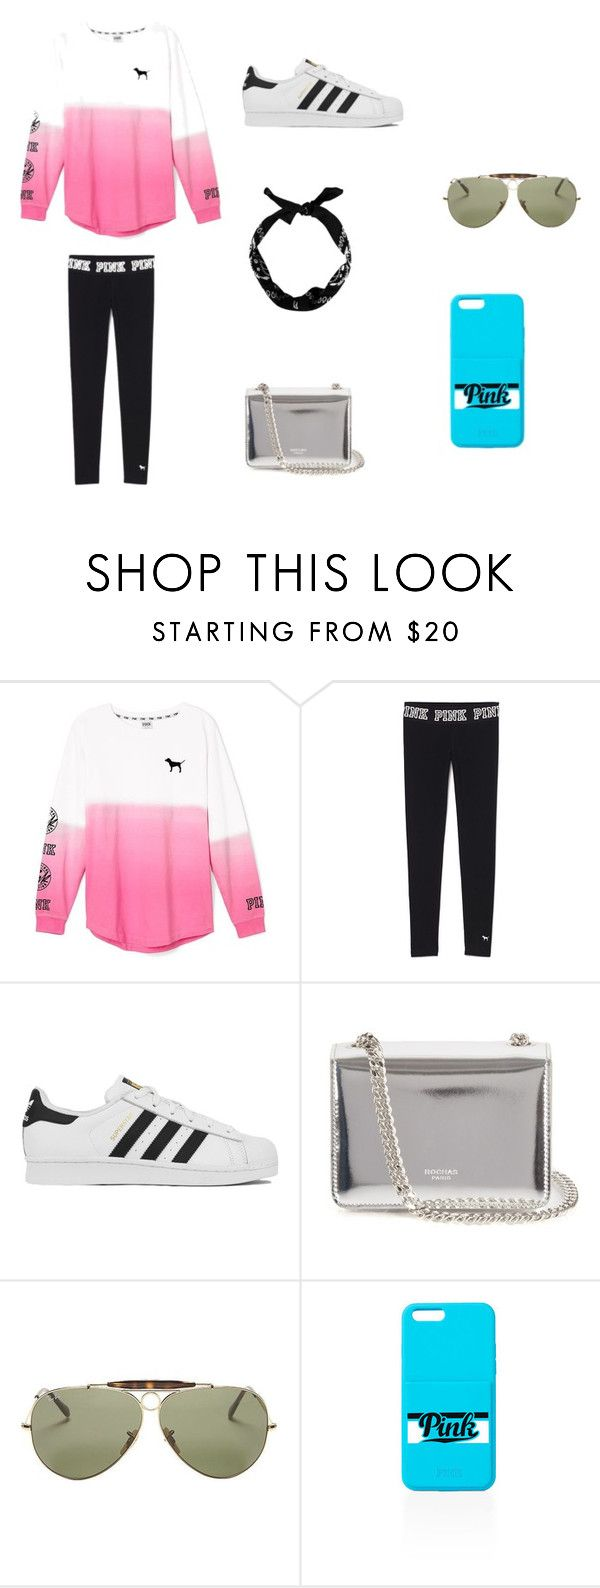 """Any Day Outfit"" by jazmine-1222 ❤ liked on Polyvore featuring Victoria's Secret, adidas, Rochas, Ray-Ban, women's clothing, women, female, woman, misses and juniors"